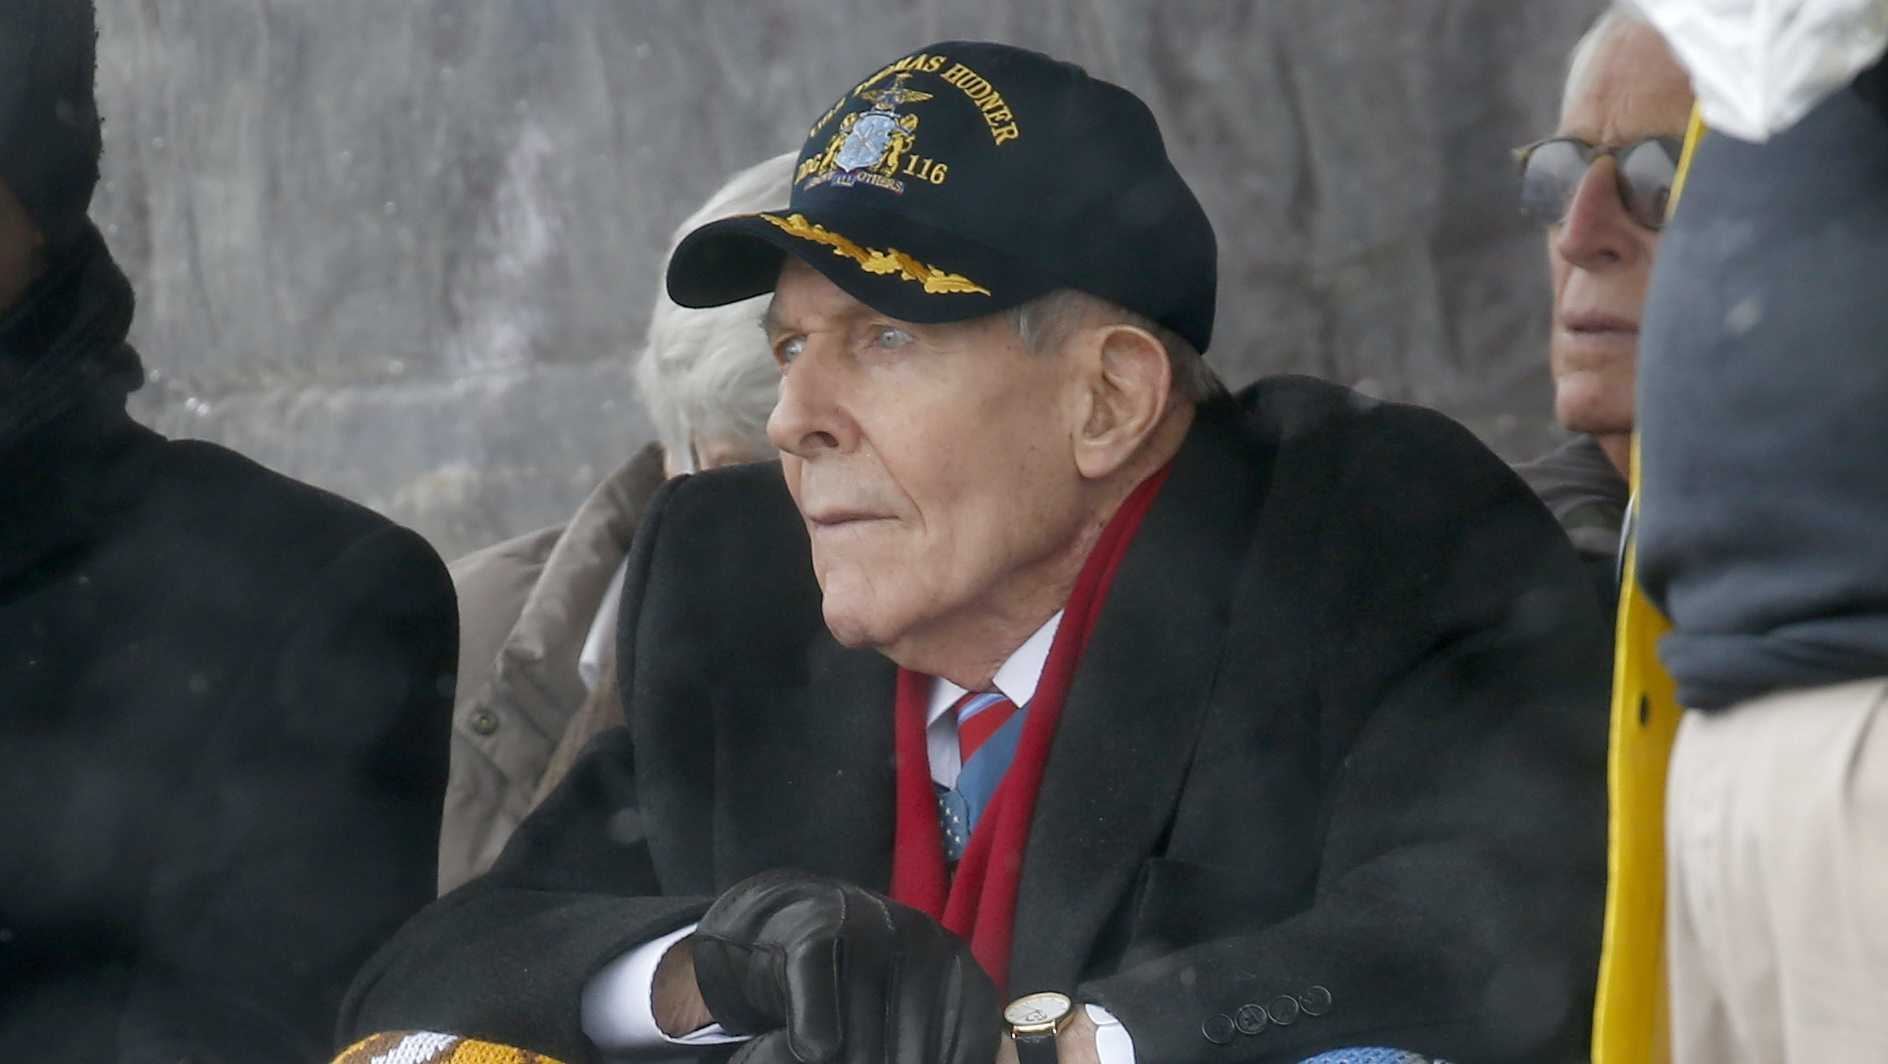 Korean War veteran Thomas Hudner looks on during the christening ceremony for the future USS Thomas Hudner, a U.S. Navy destroyer named in his honor, at Bath Iron Works .